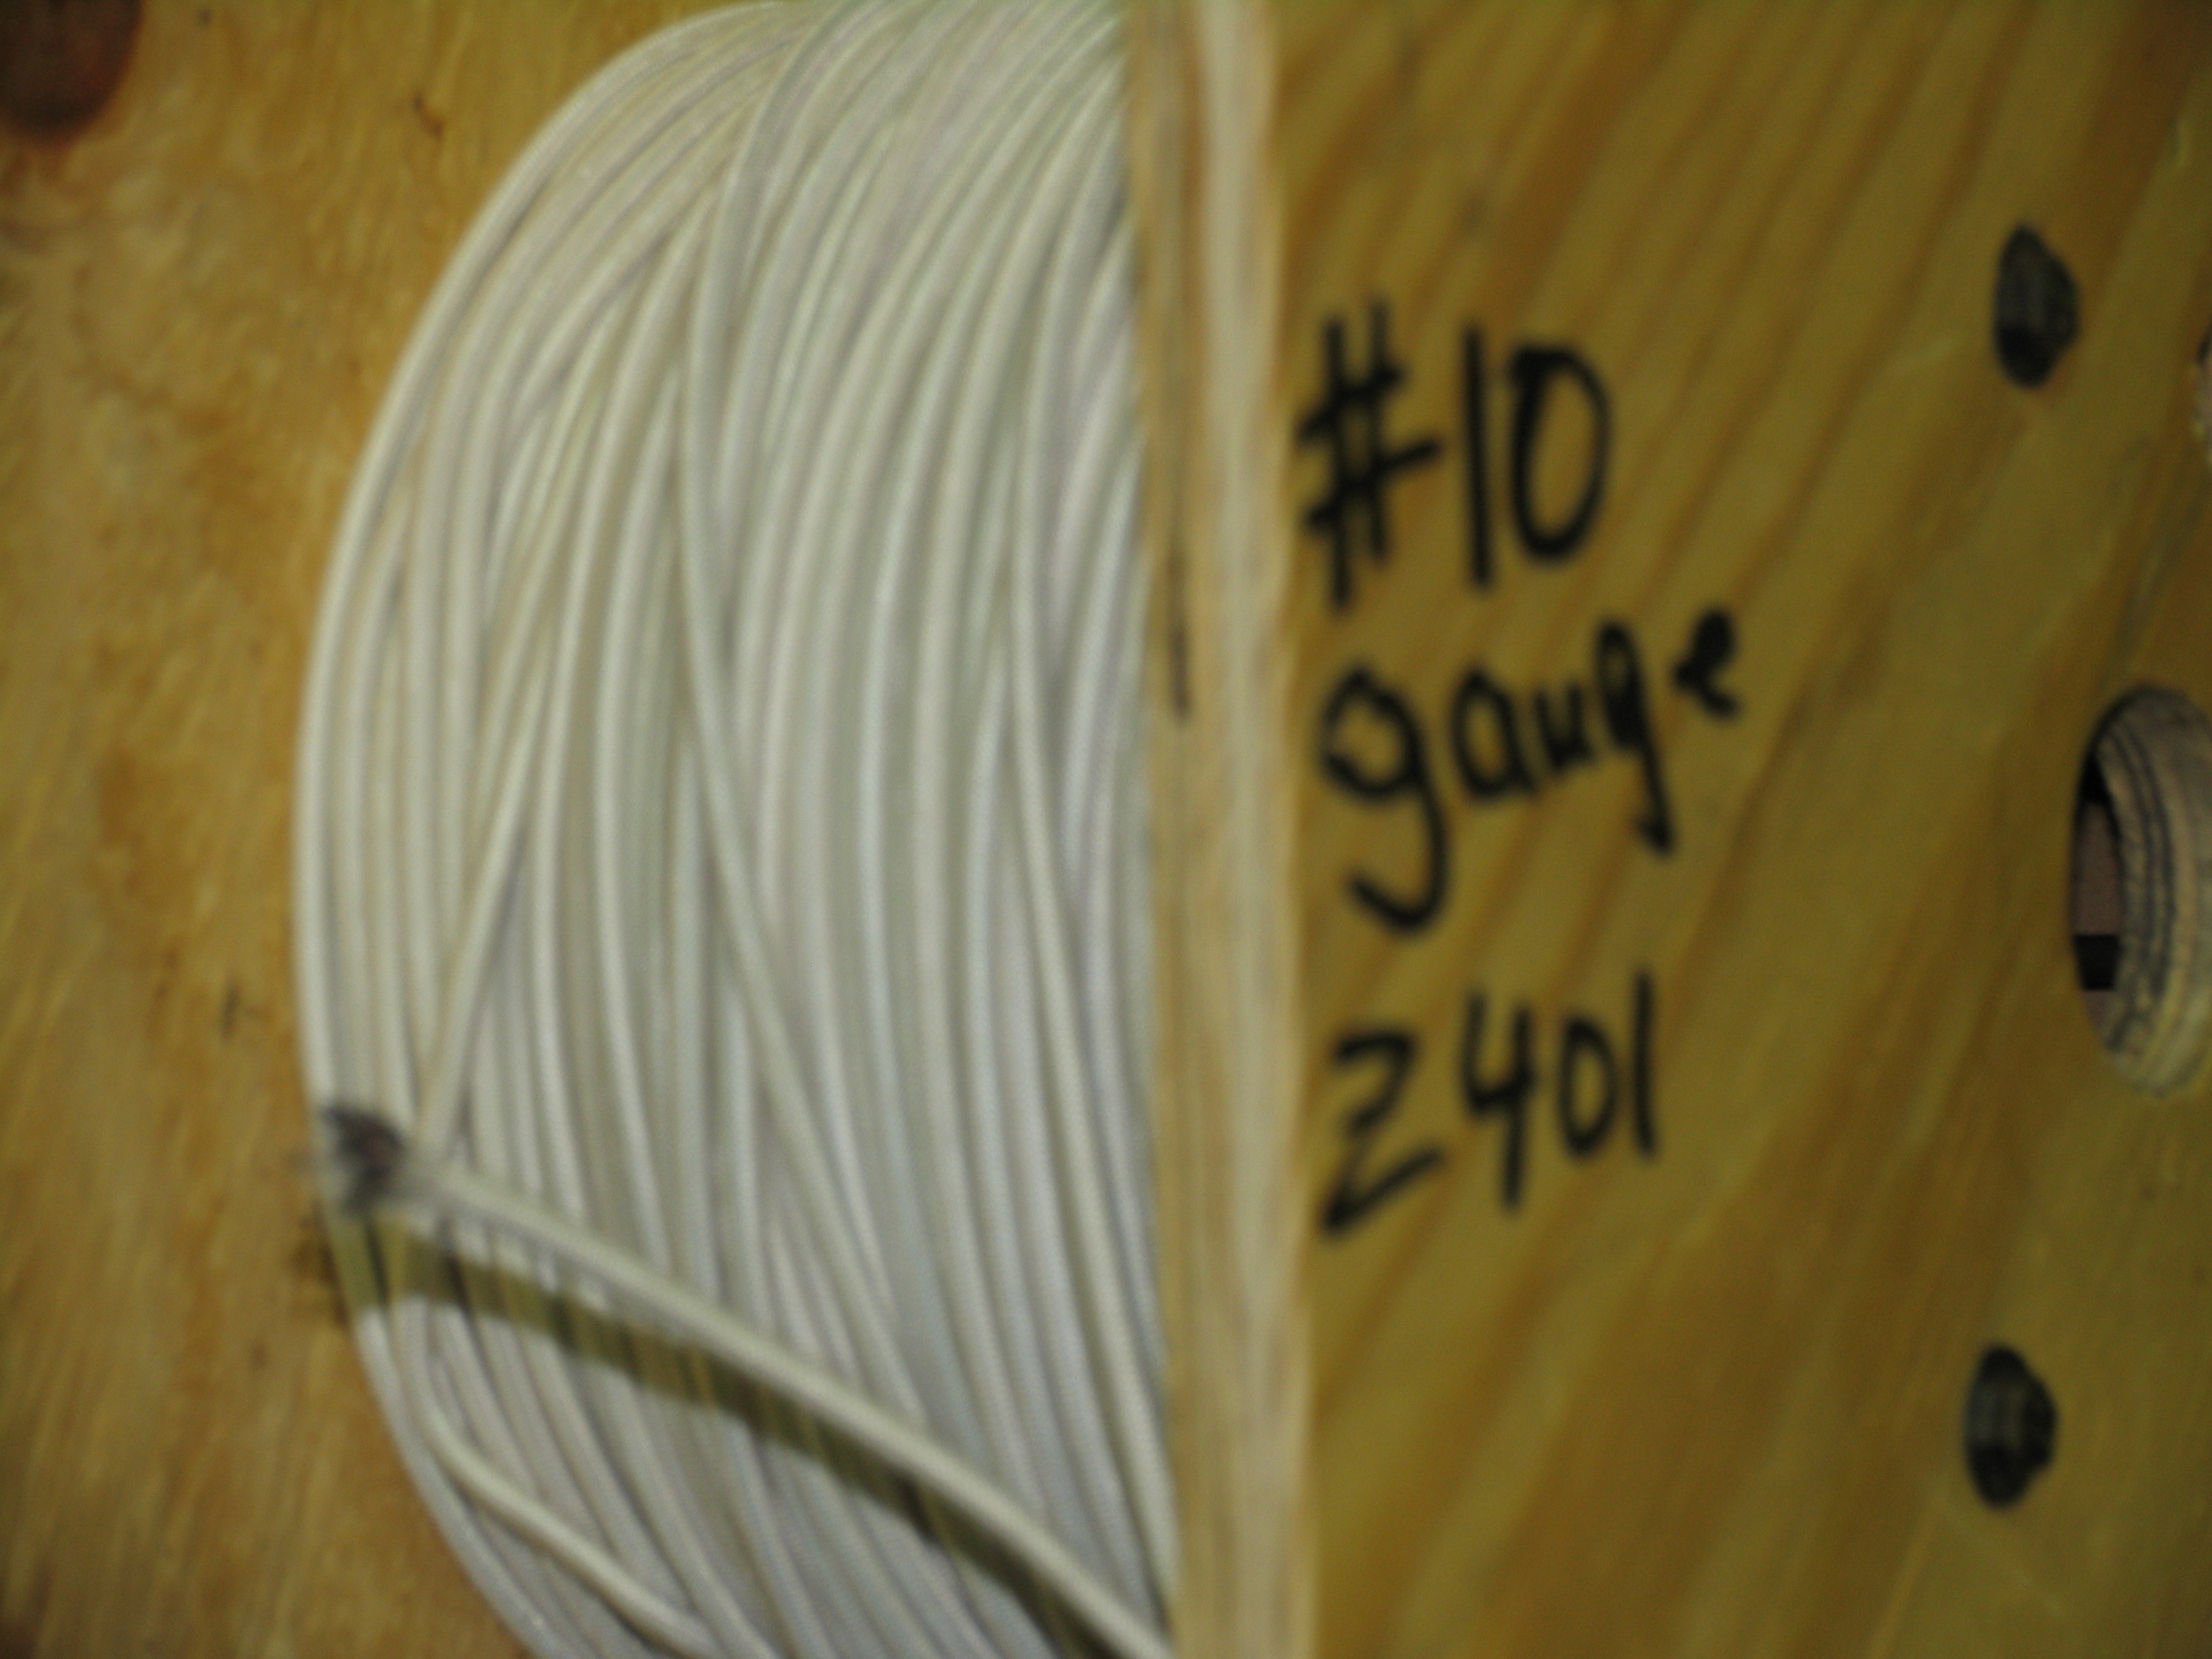 Z401 Hermetic Lead Wire #10 Wire